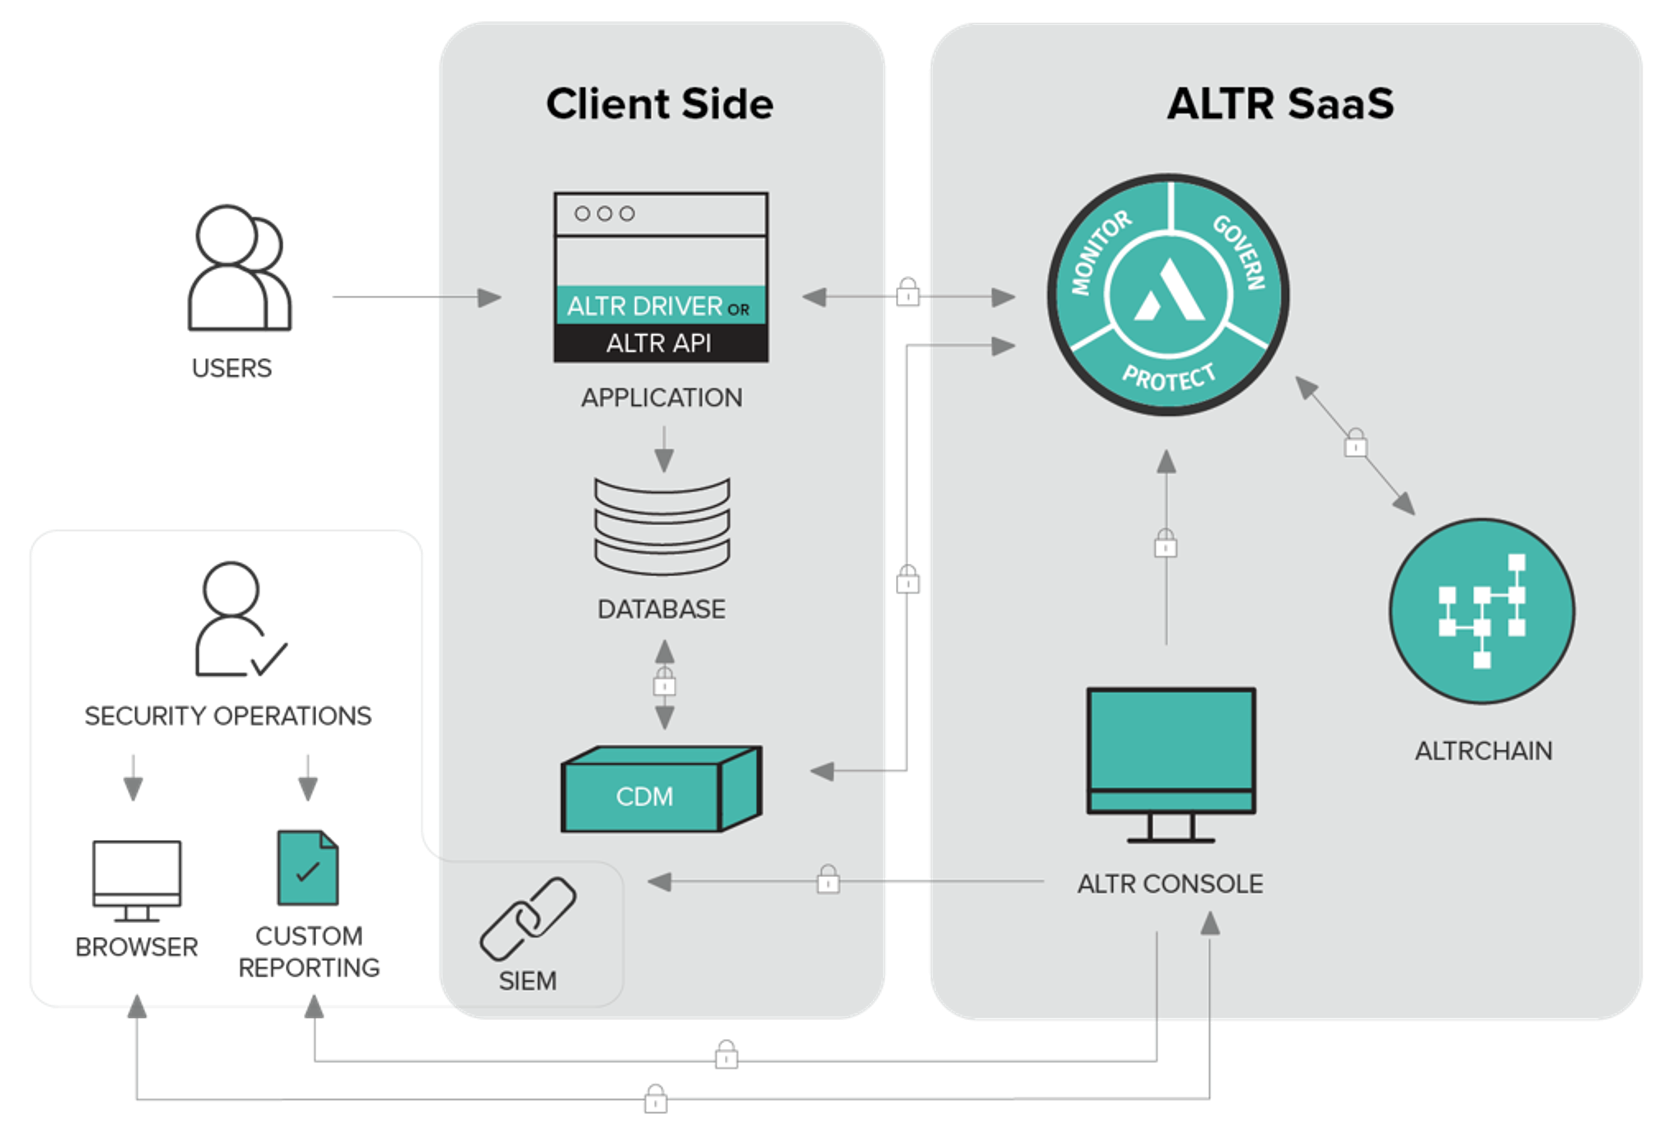 Diagram - How ALTR Works